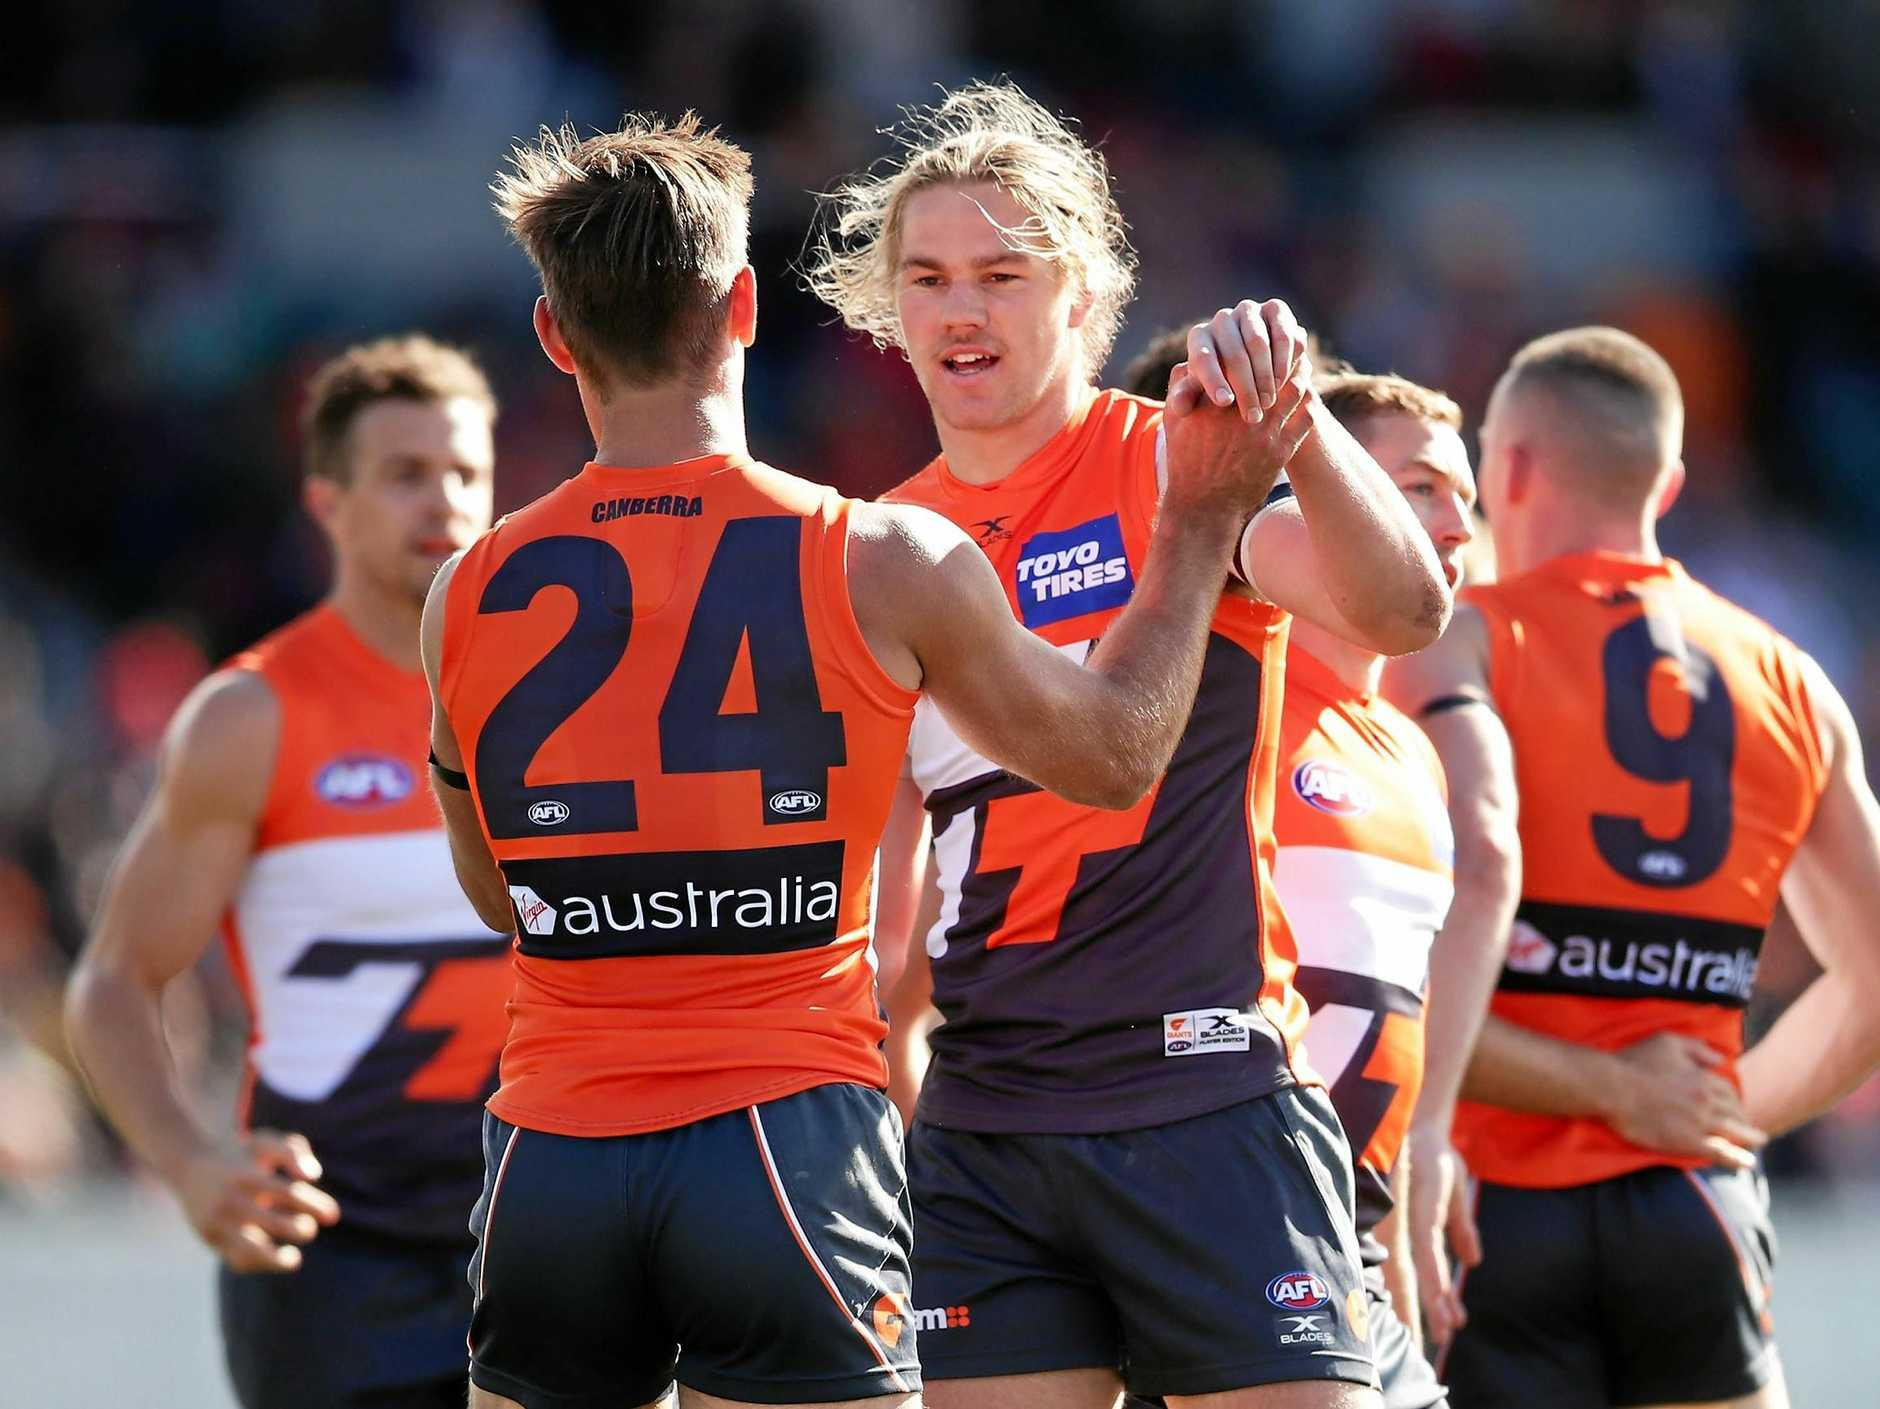 CANBERRA, AUSTRALIA - AUGUST 05:  Harrison Himmelberg of the Giants celebrates with team mates after kicking a goal during the round 20 AFL match between the Greater Western Sydney Giants and the Melbourne Demons at UNSW Canberra Oval on August 5, 2017 in Canberra, Australia.  (Photo by Matt King/Getty Images)